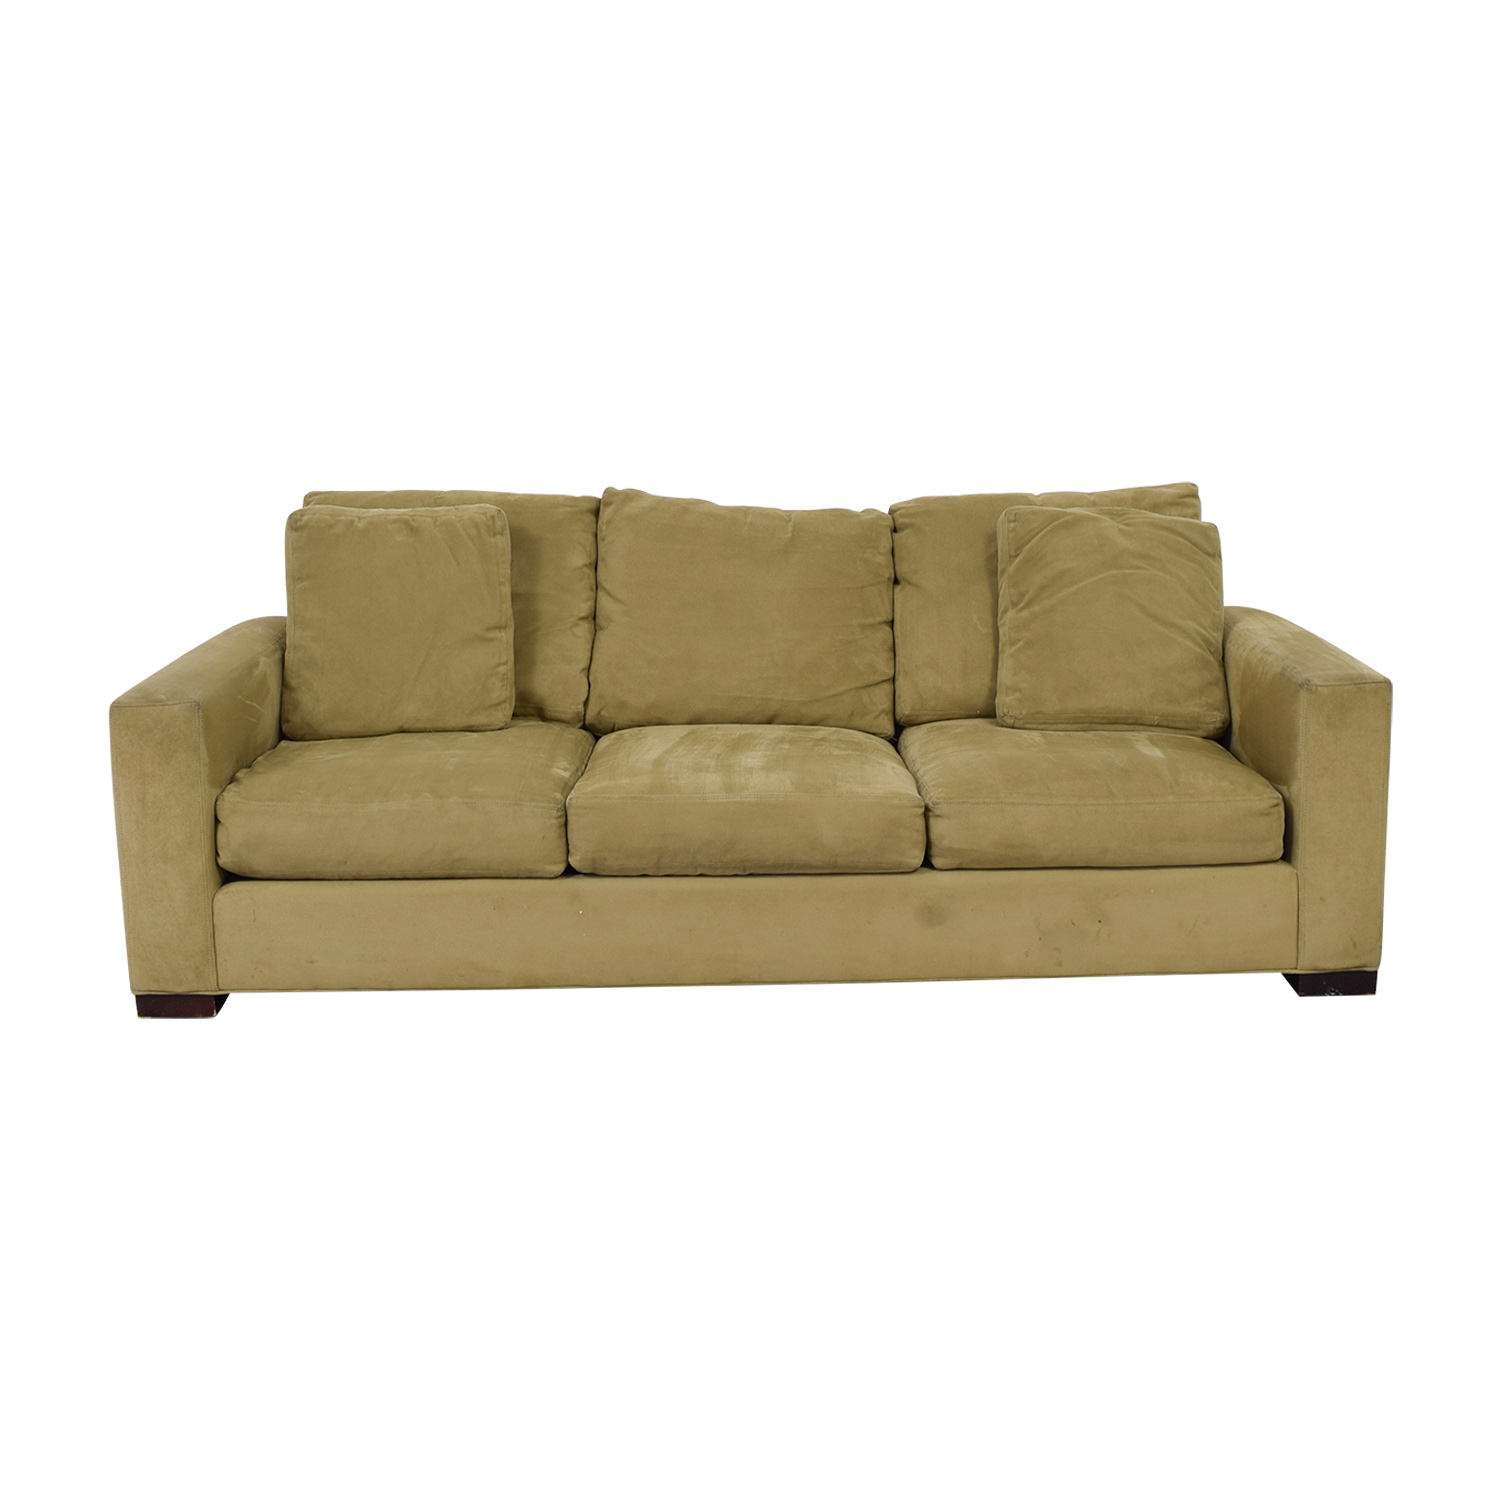 Room & Board Room & Board Metro Beige Three-Cushion Sofa dimensions